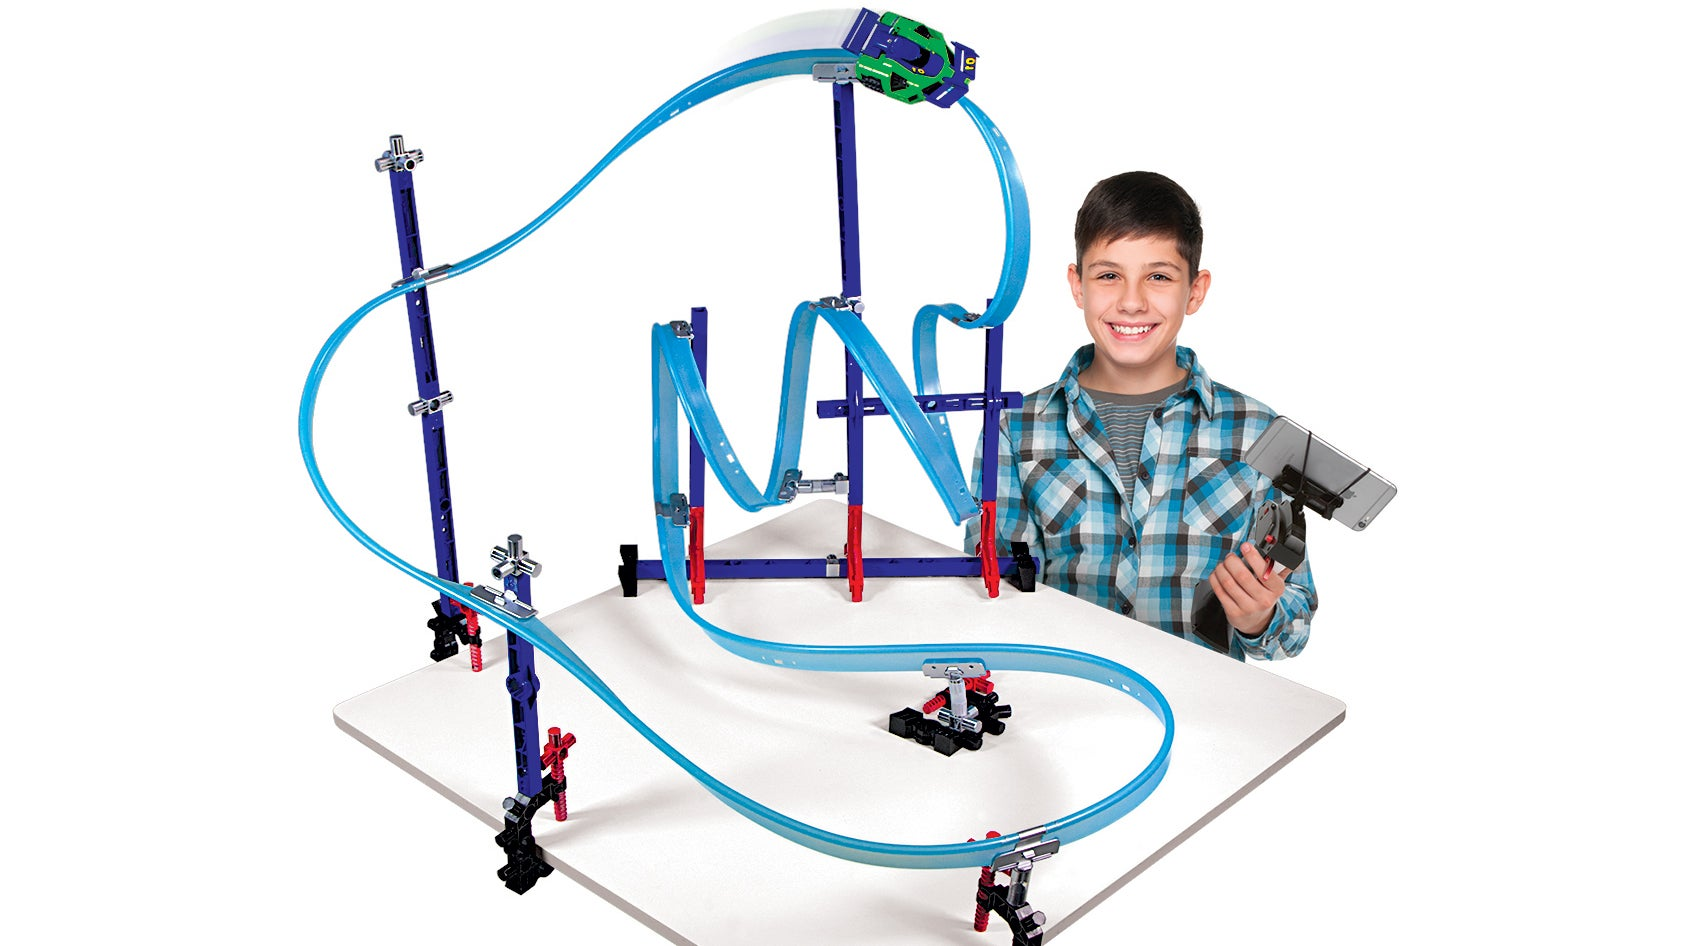 Lionel Has Turned the Classic Model Train Set Into a Race Track